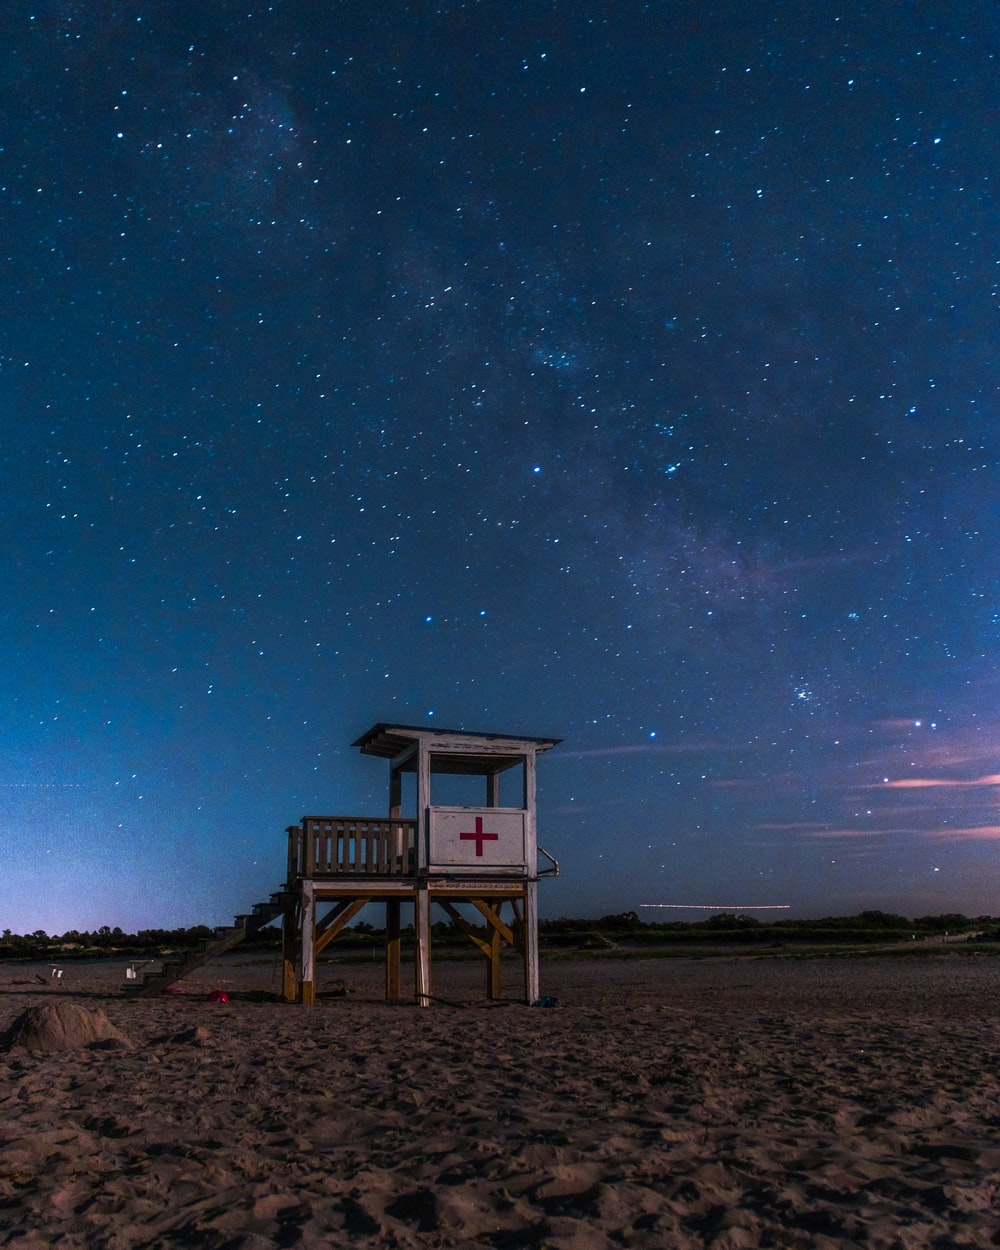 white lifeguard shed on beach under starry sky